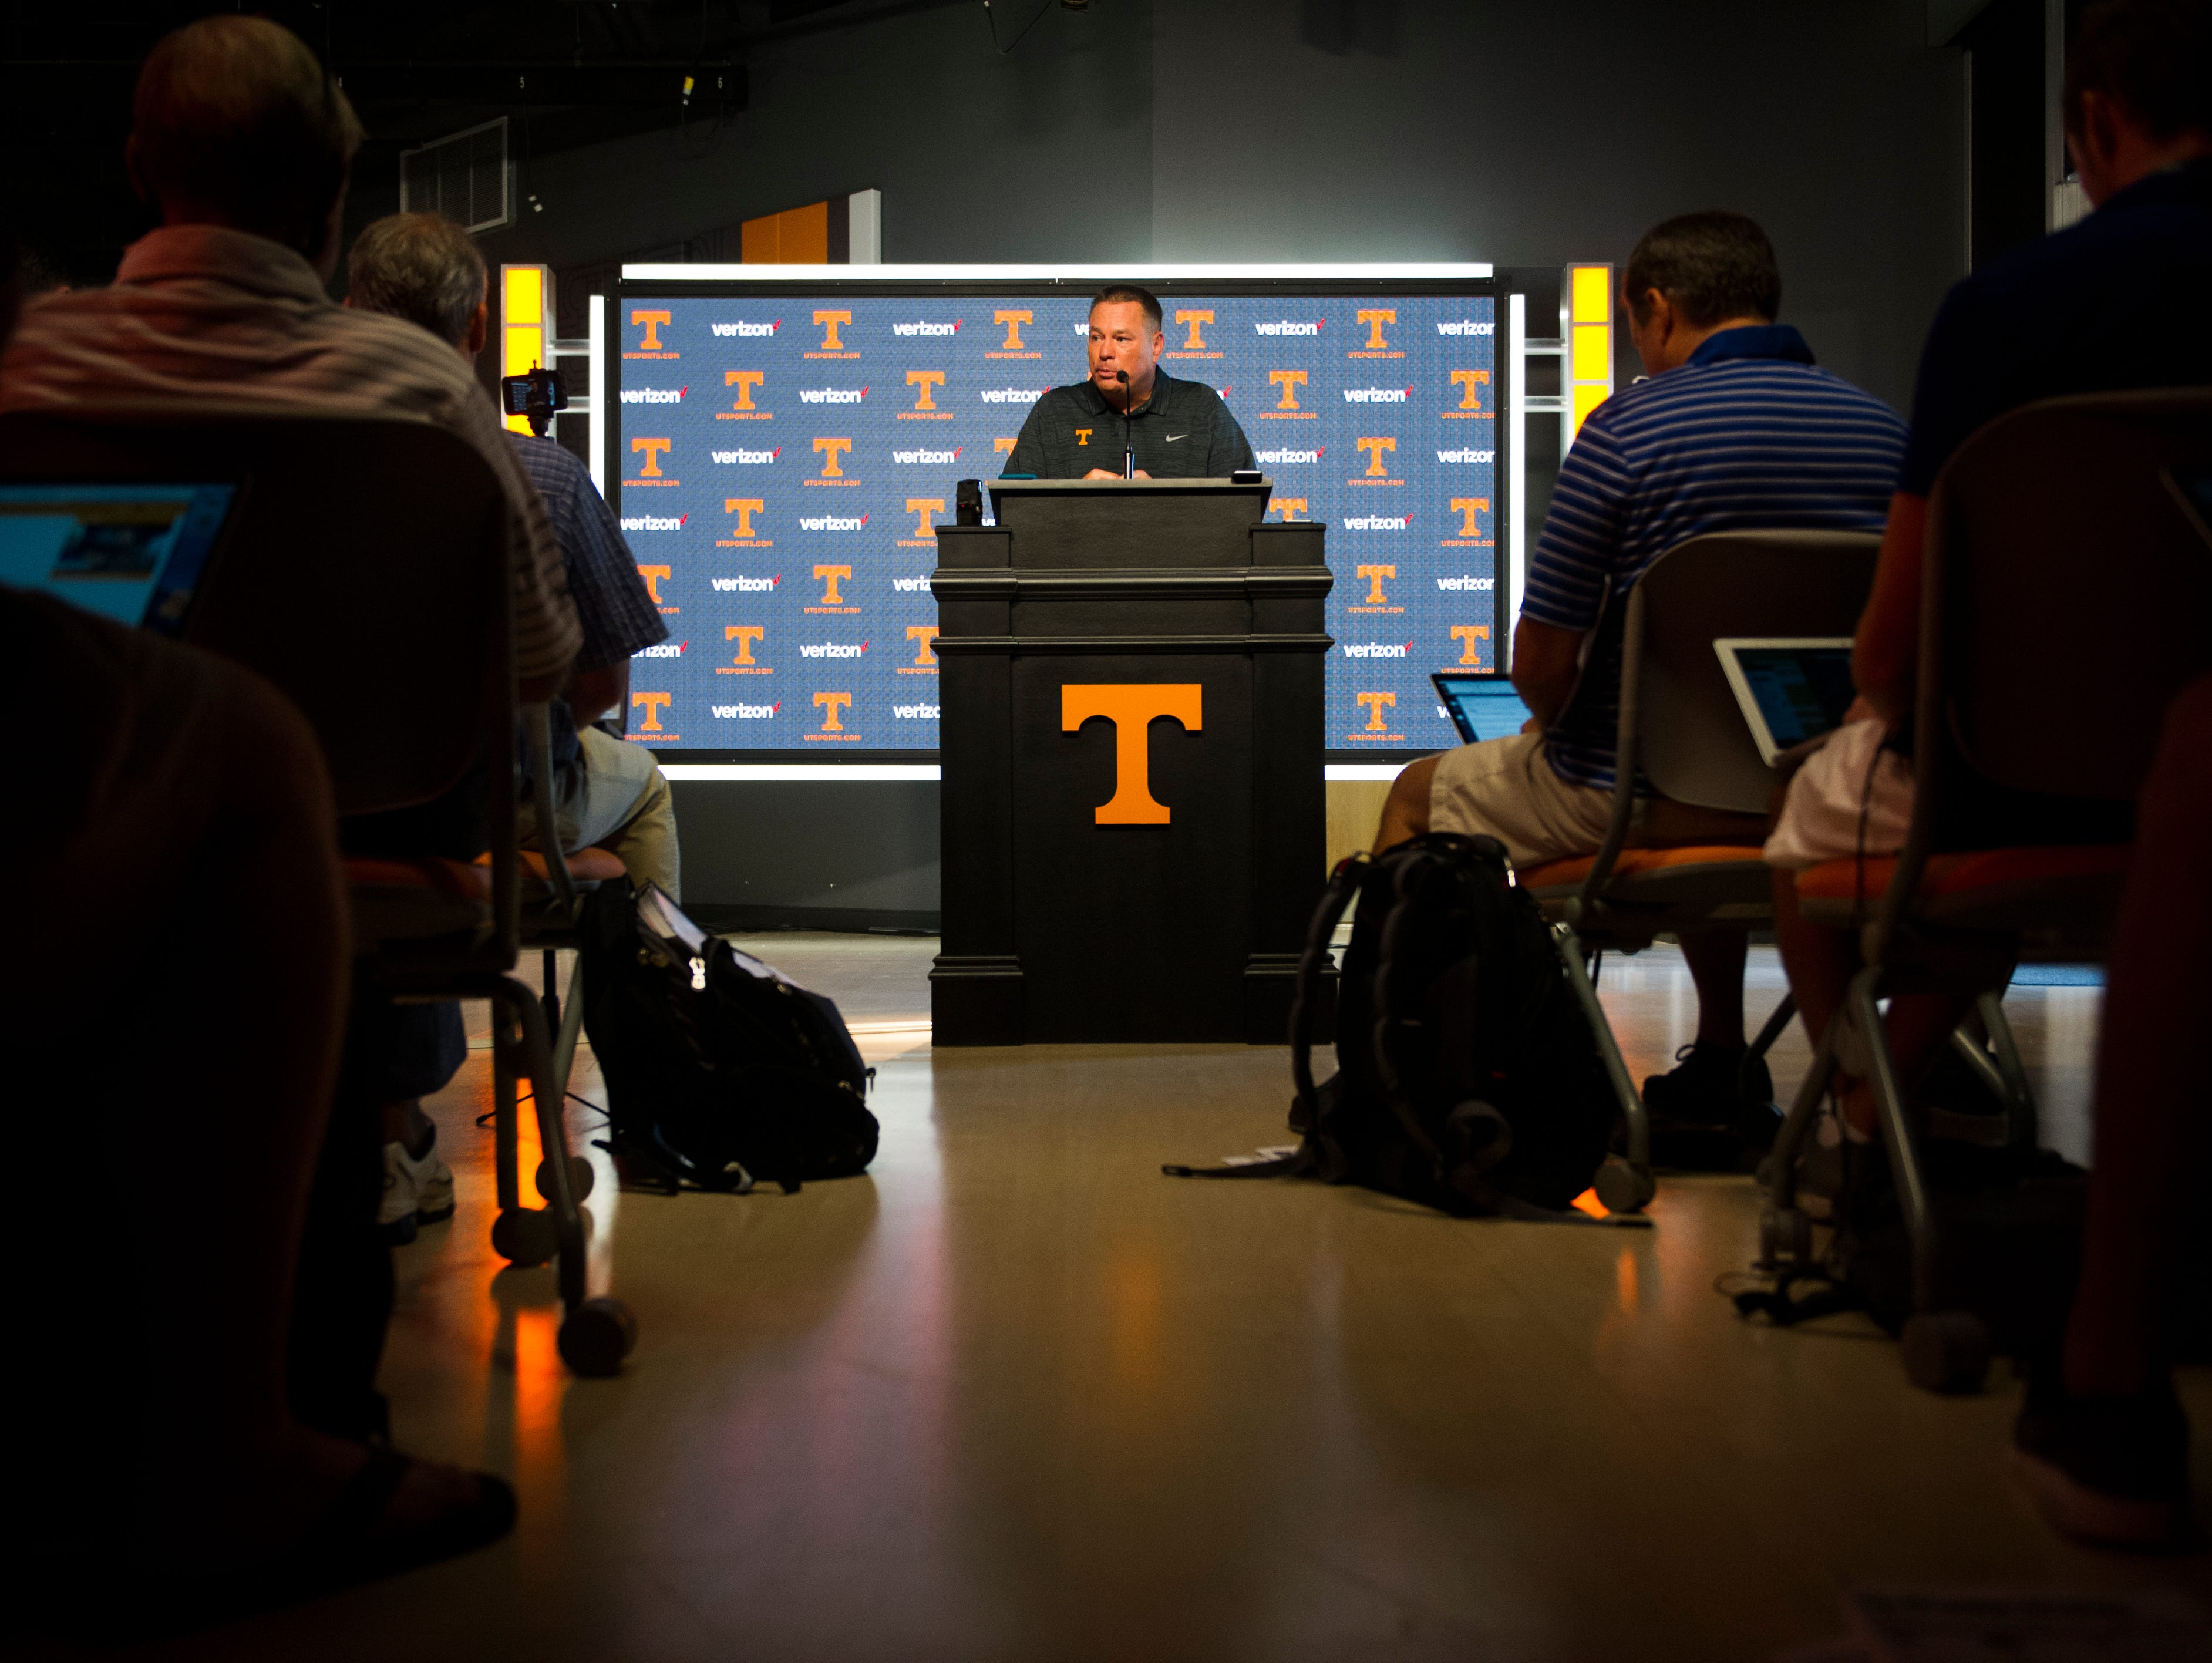 University of Tennessee head football coach Butch Jones speaks to the media during a press conference in the Ray and Lucy Hand digital studio at University of Tennessee Wednesday, Aug. 30, 2017.